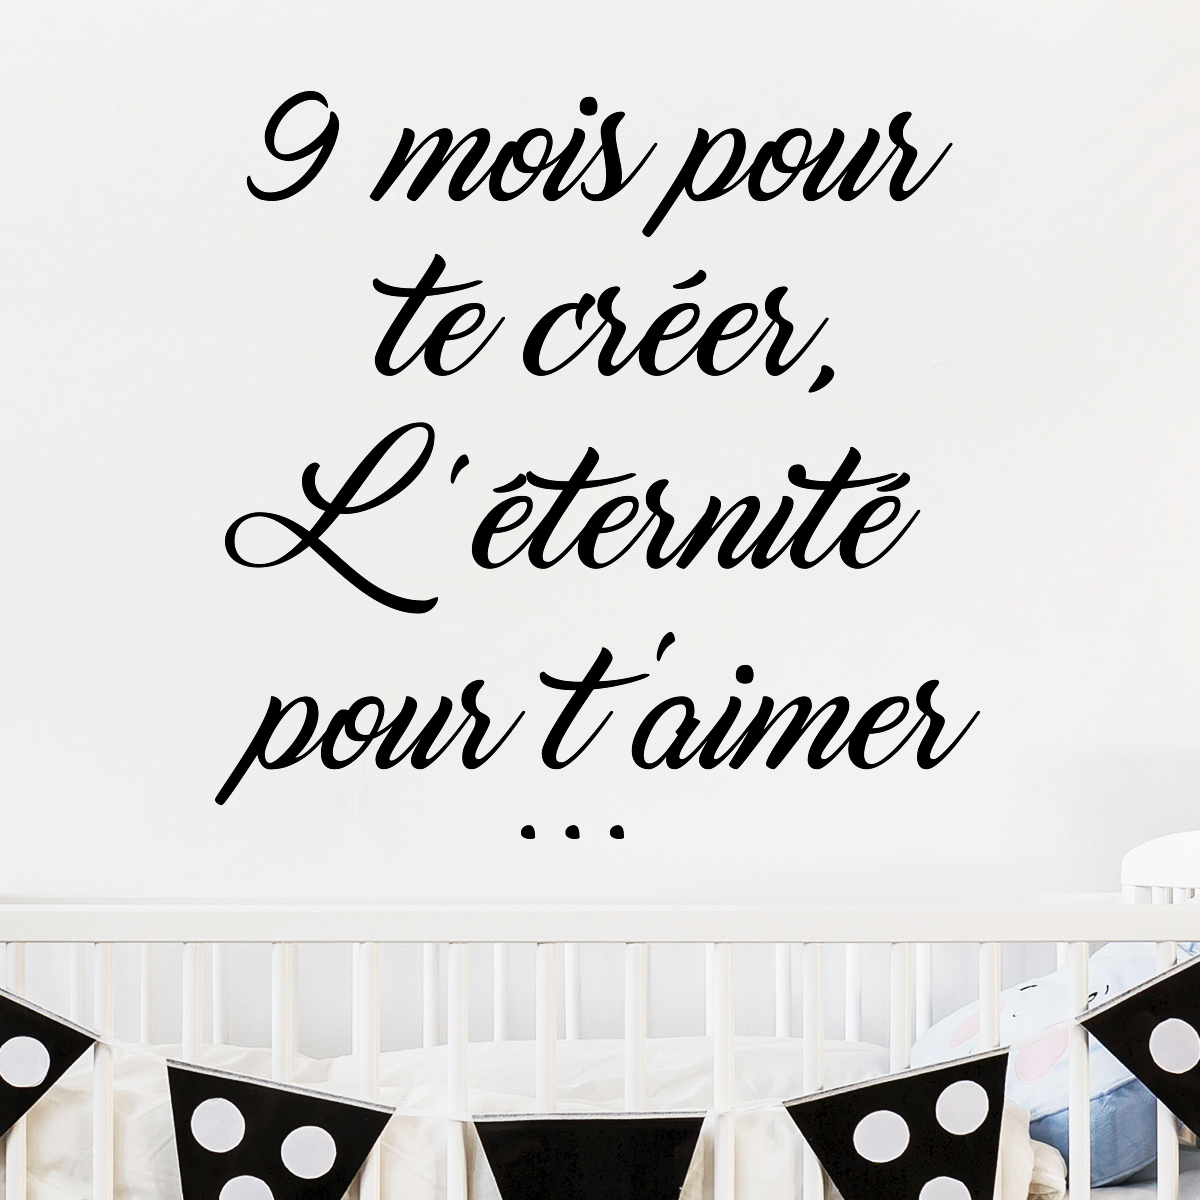 sticker citation 9 mois pour te cr er l 39 ternit pour t 39 aimer stickers citations fran ais. Black Bedroom Furniture Sets. Home Design Ideas